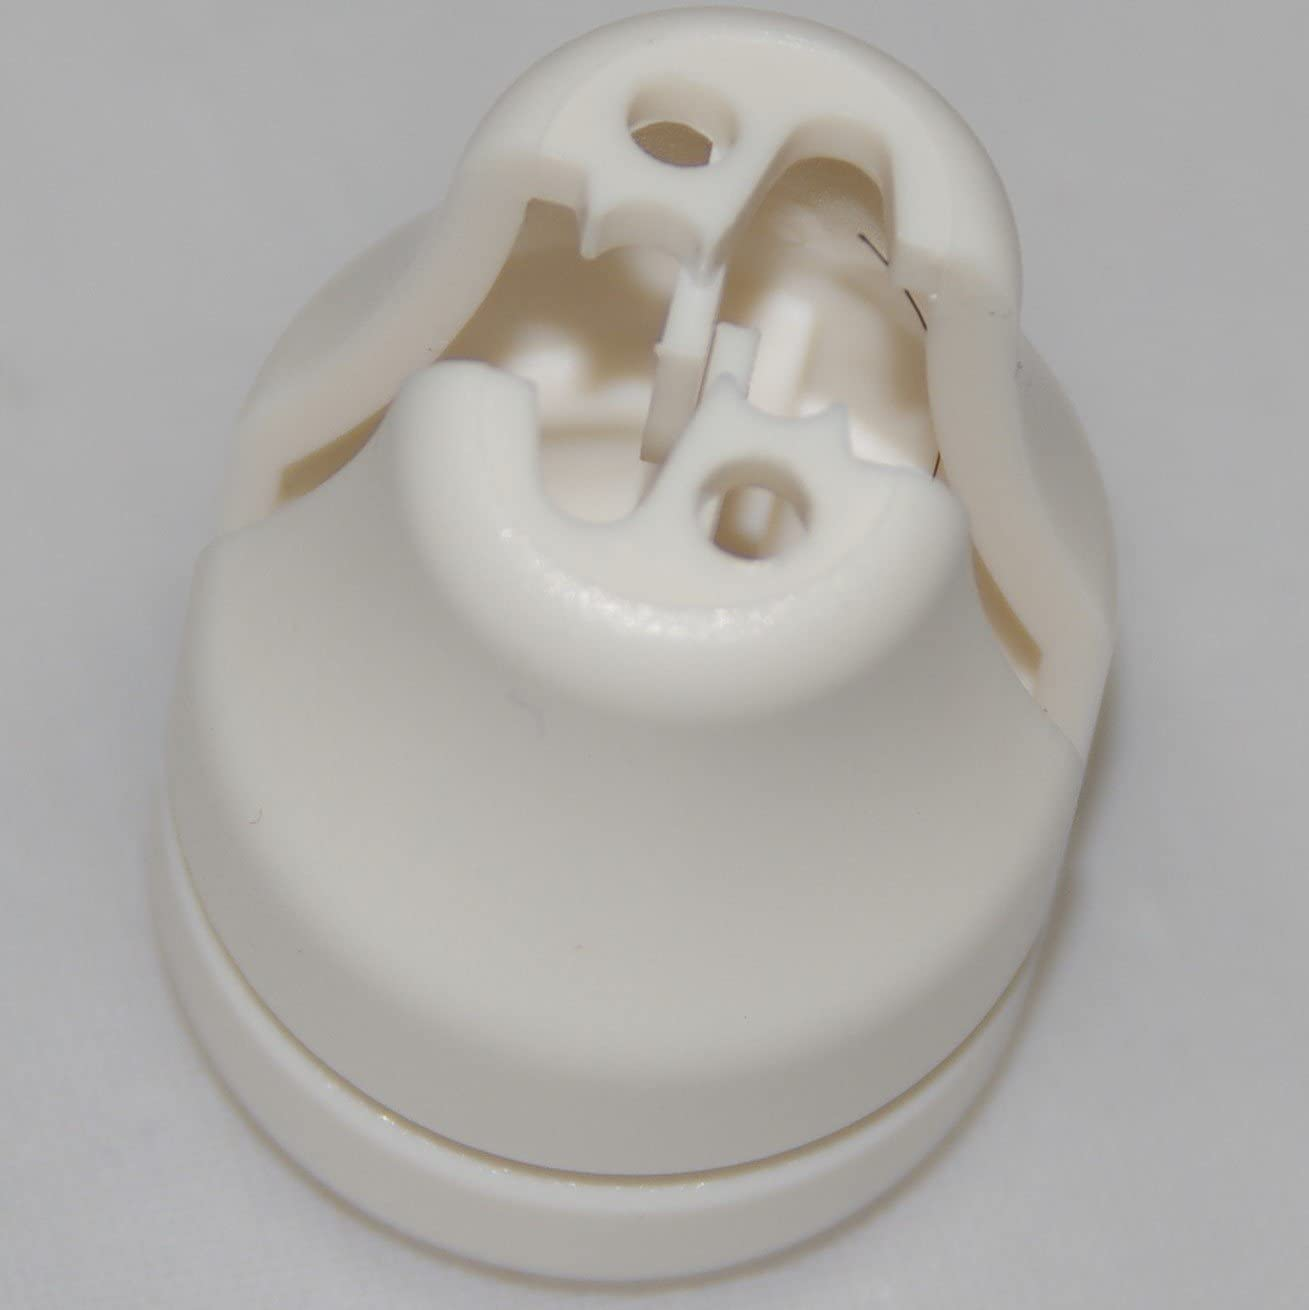 HomeAmore 8 Pack Safety White Blind Knobs. This Tassel Separates The Pull Cords When Excessive Pressure is Detected to Avoid Potential Child Or Pet Strangulation. A Smart Choice for Parents.